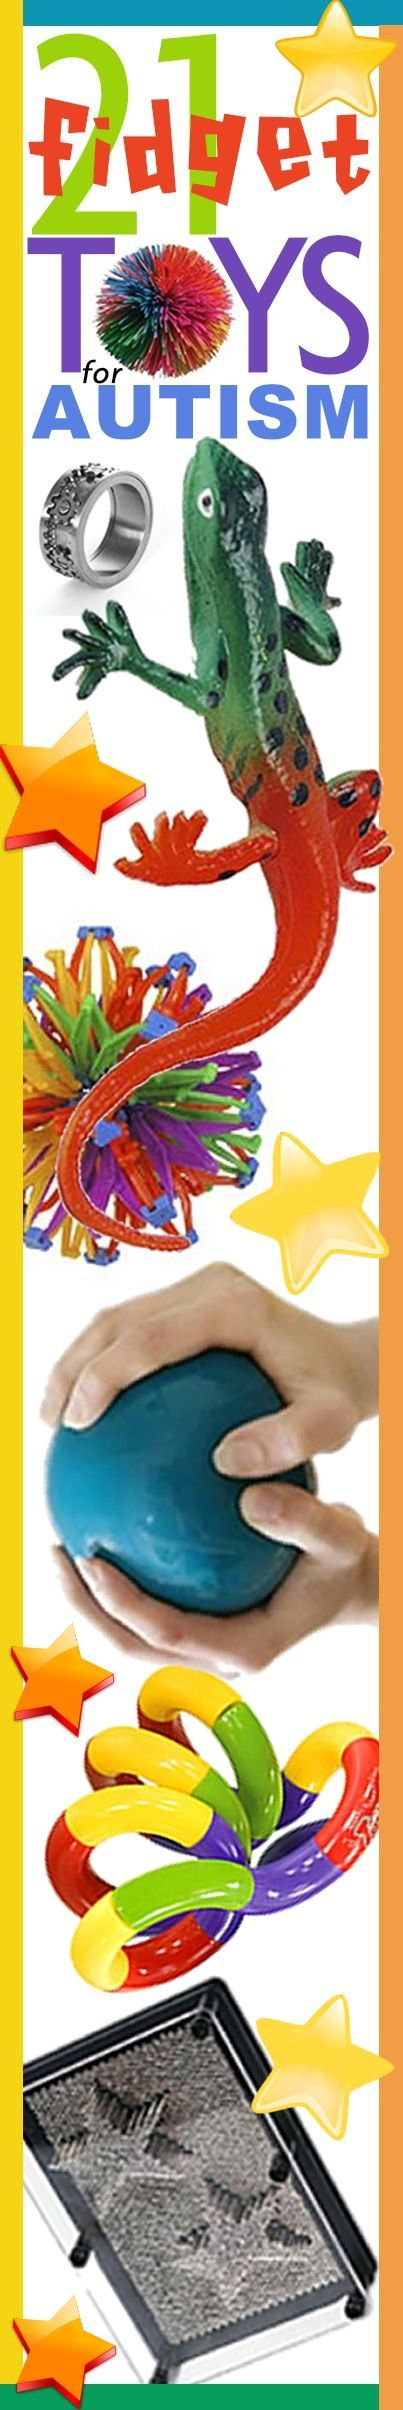 Get your hands on these awesome fidget toys for #Autism by clicking on the graphic. Don't forget to REPIN!